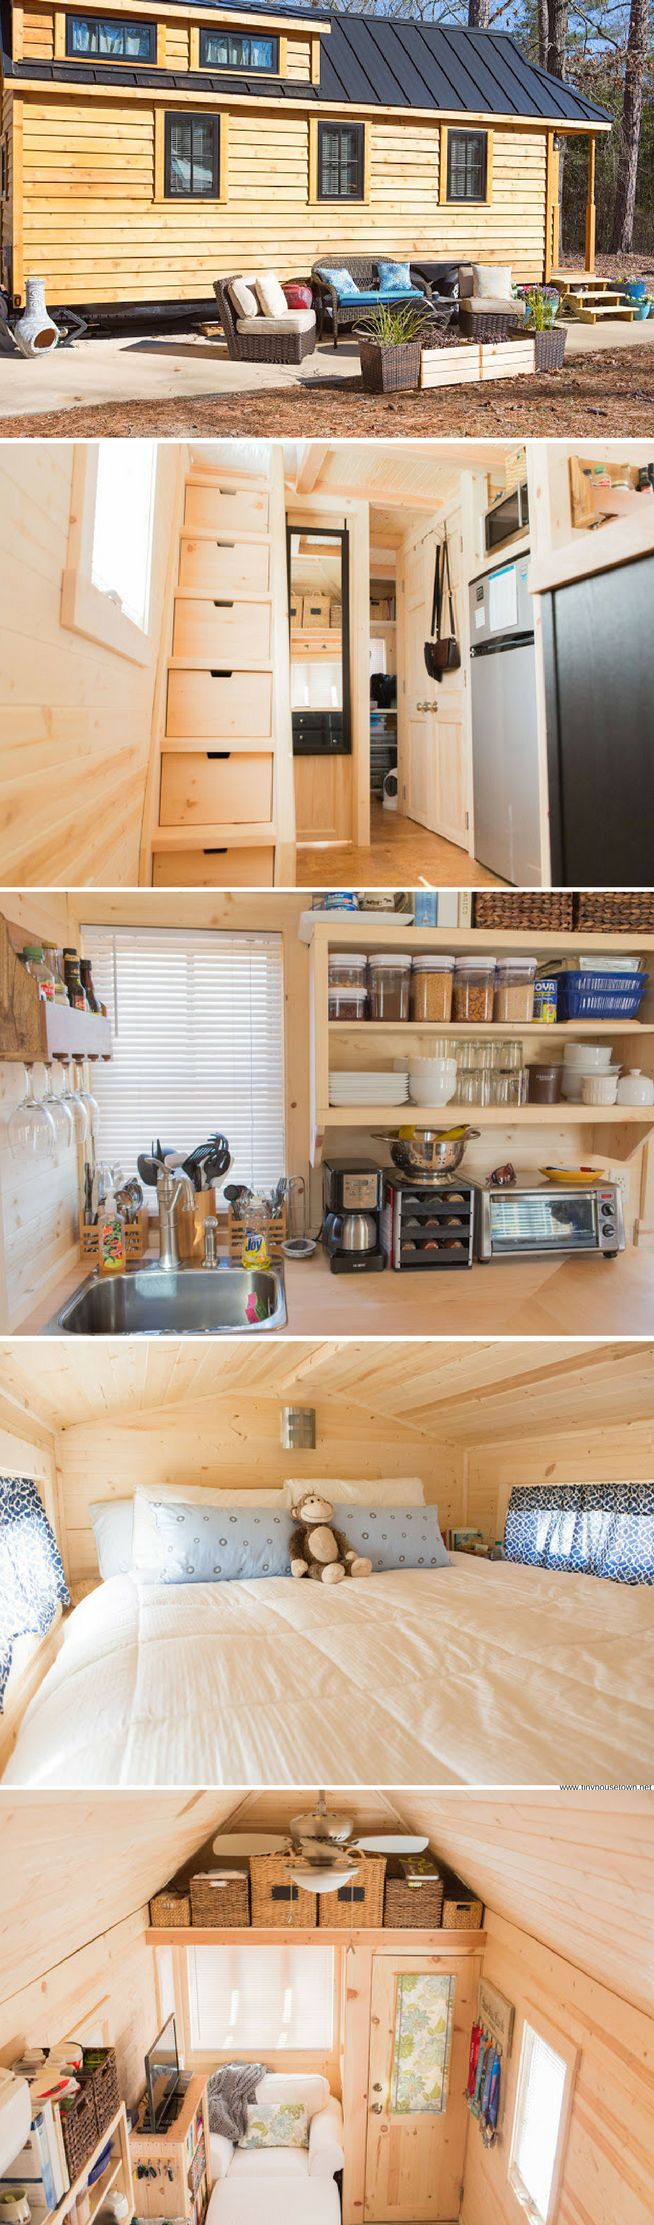 "Lora's ""Cypress"" tiny home from the Tumbleweed Tiny House Company"